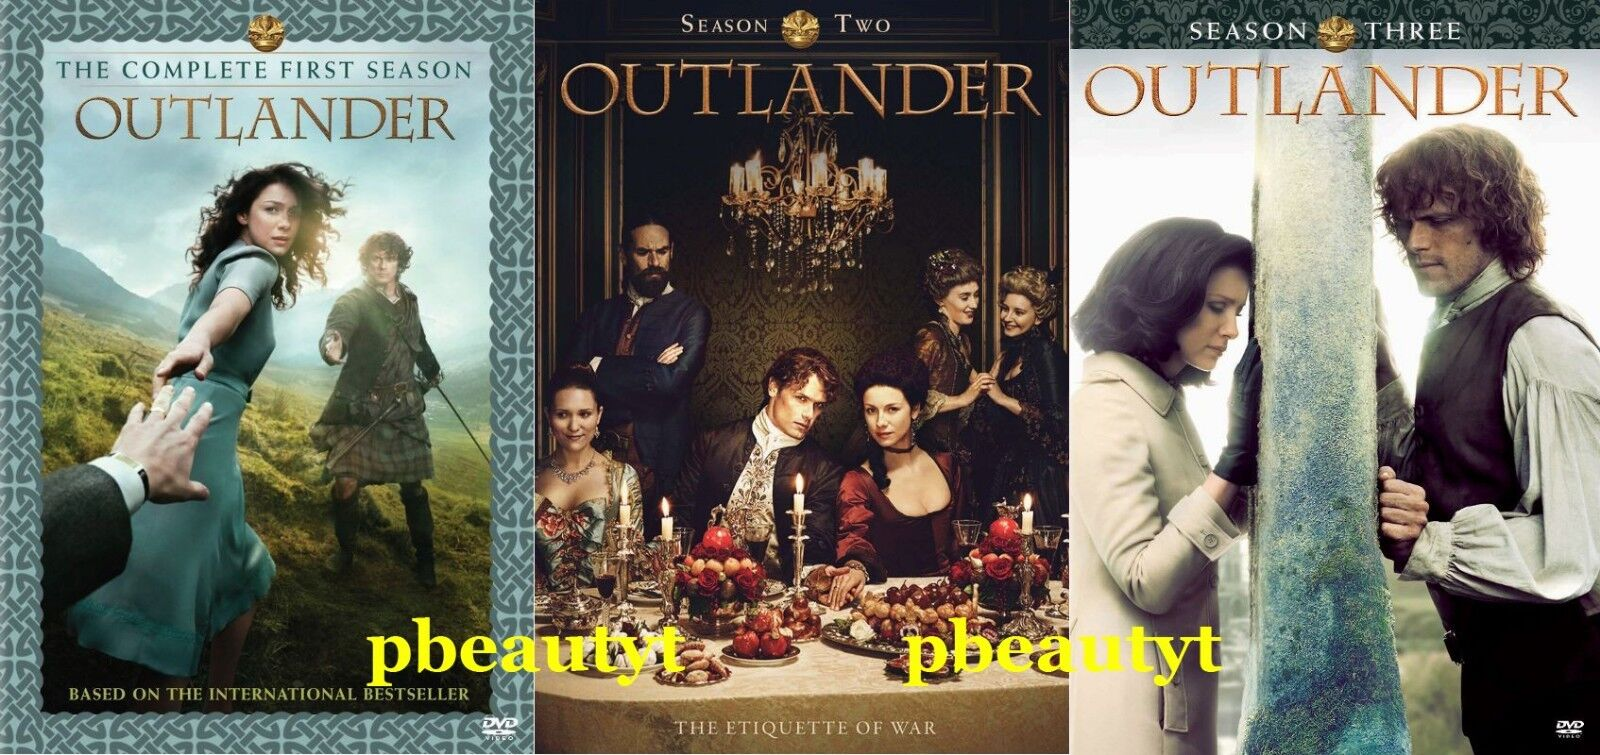 Купить Outlander:The Complete Seasons 1-3 3 DVD Sets NEW Series Vol.1 2 First Second Th